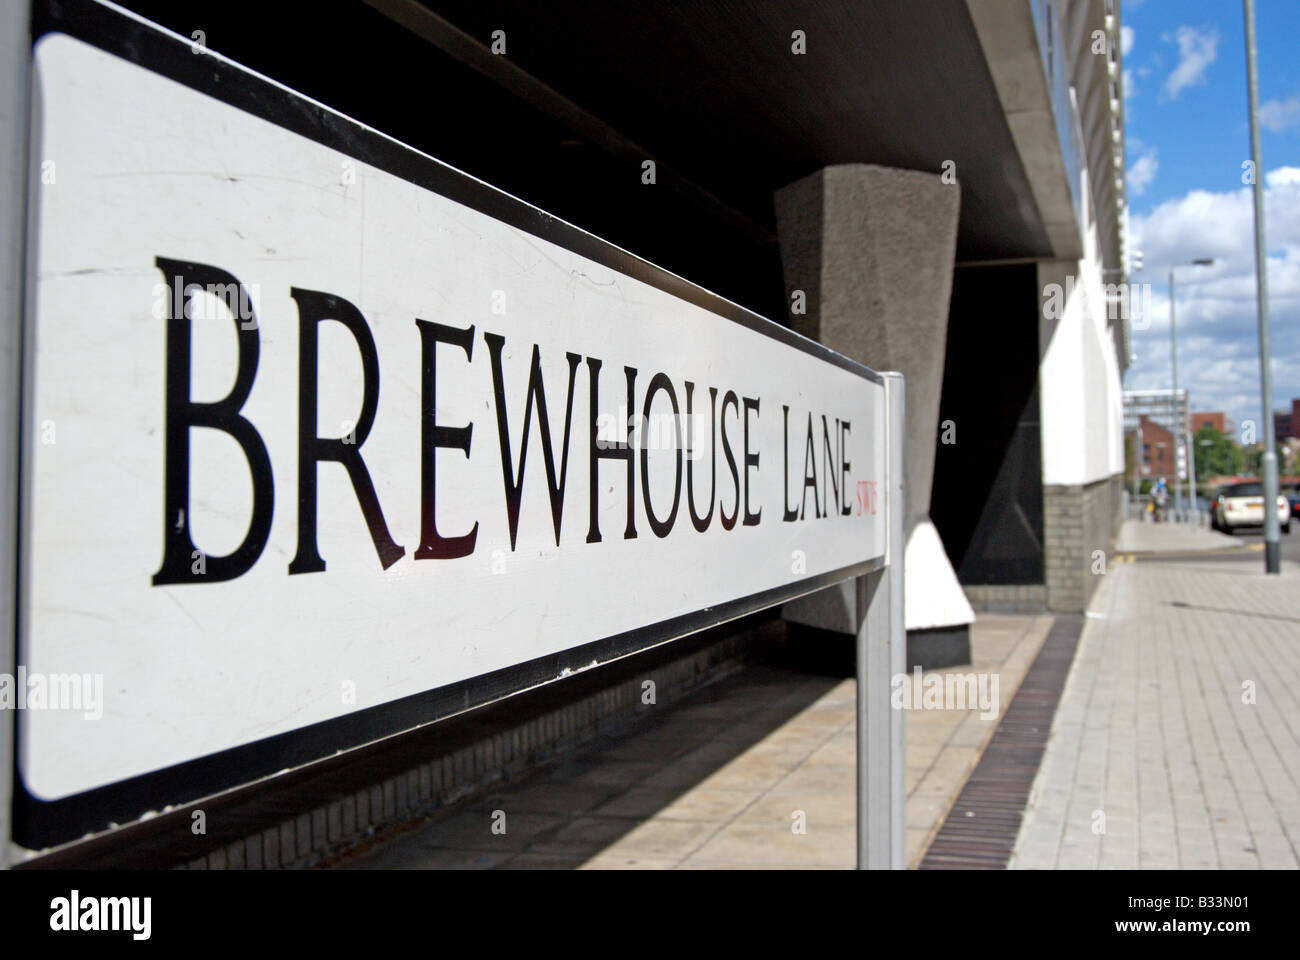 black and white street sign for brewhouse lane, in putney, southwest london, england - Stock Image